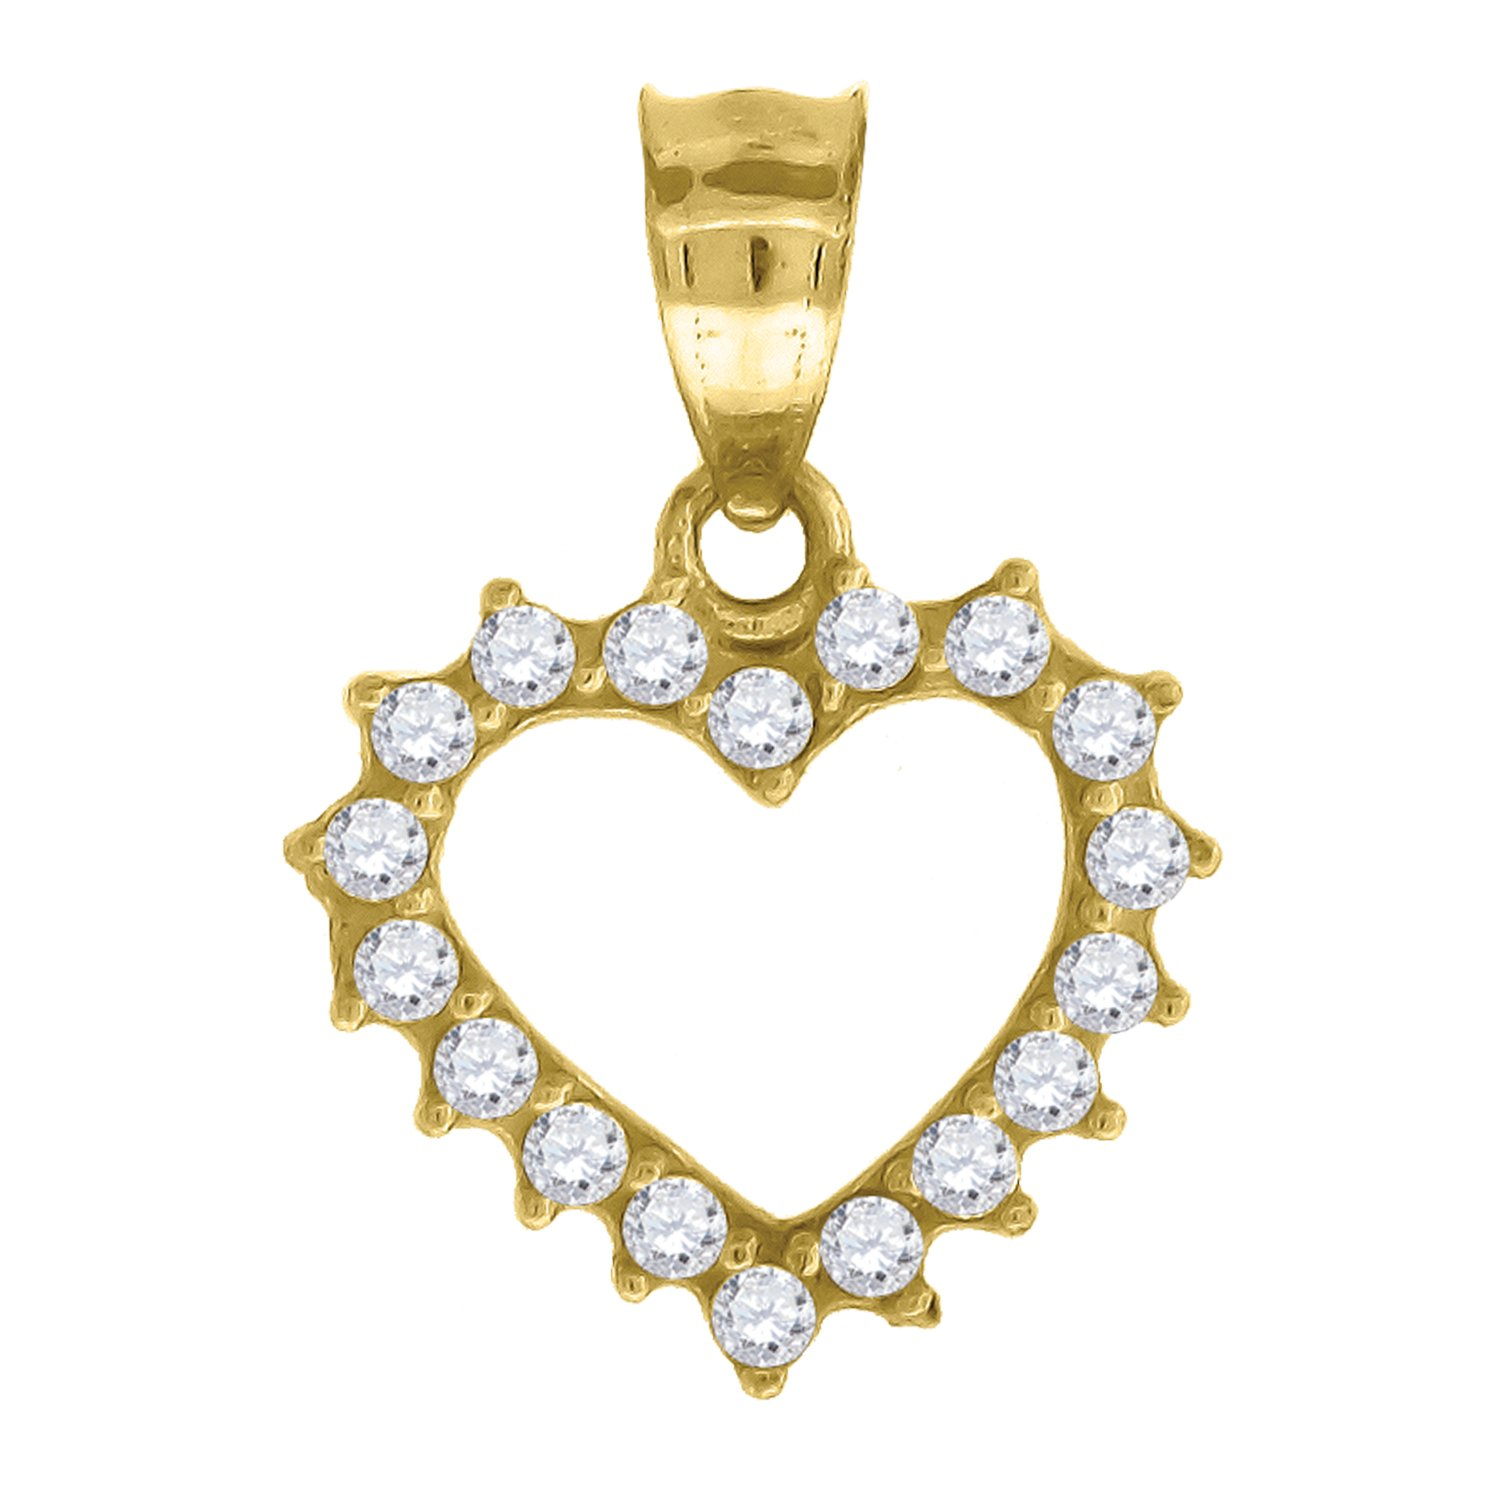 Jewels By Lux 10kt Gold DC Womans Ht:22.5mm x W:15.8mm Heart Charm Pendant Set with Cubic Zirconia that is white in color.